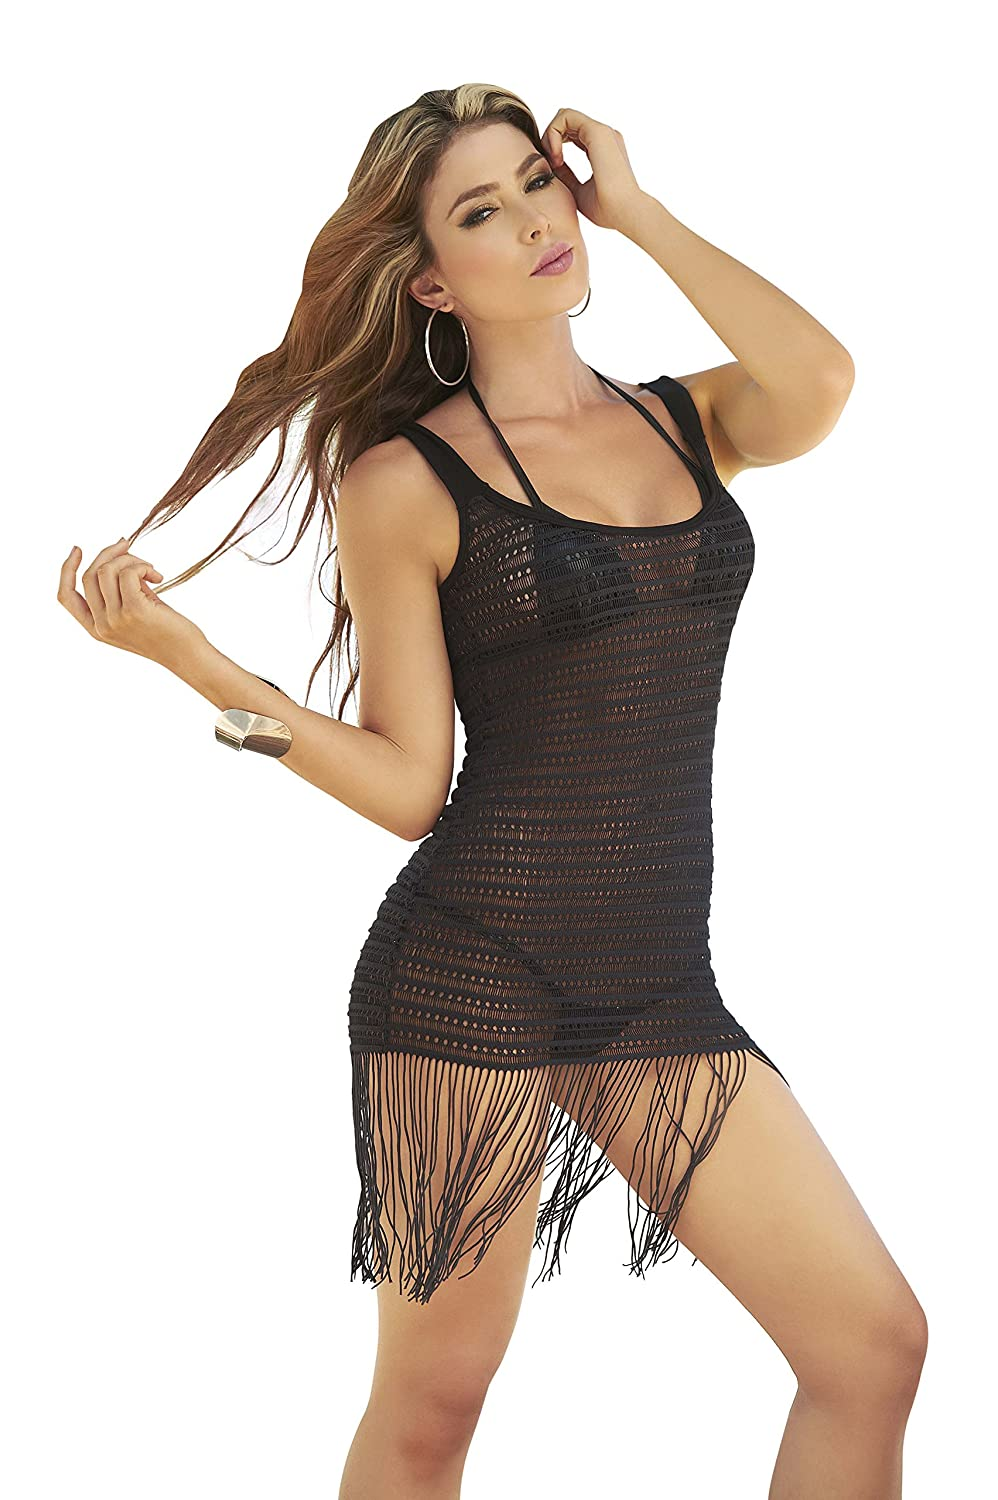 022ba52d81651 Amazon.com: Mapalé by AM:PM Women's Sheer Cover Up Beach Dress: Clothing